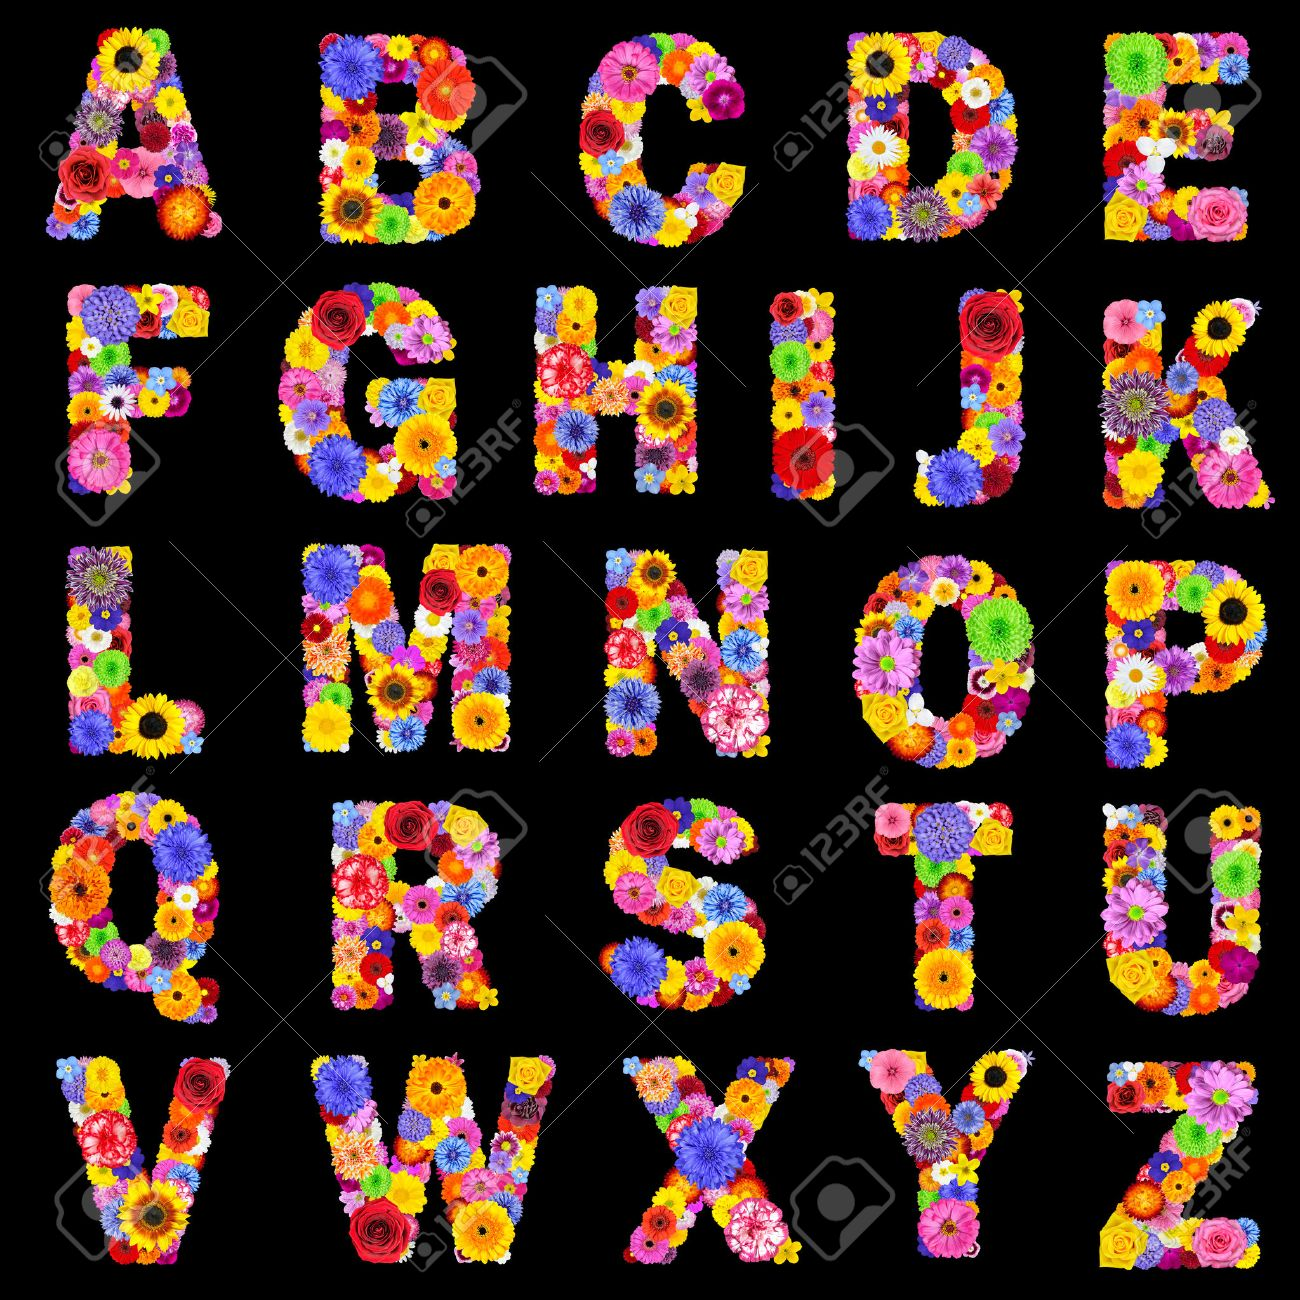 Full Floral Alphabet Isolated on Black Background.  Letters A to Z made of many colorful and original flowers Stock Photo - 23646574